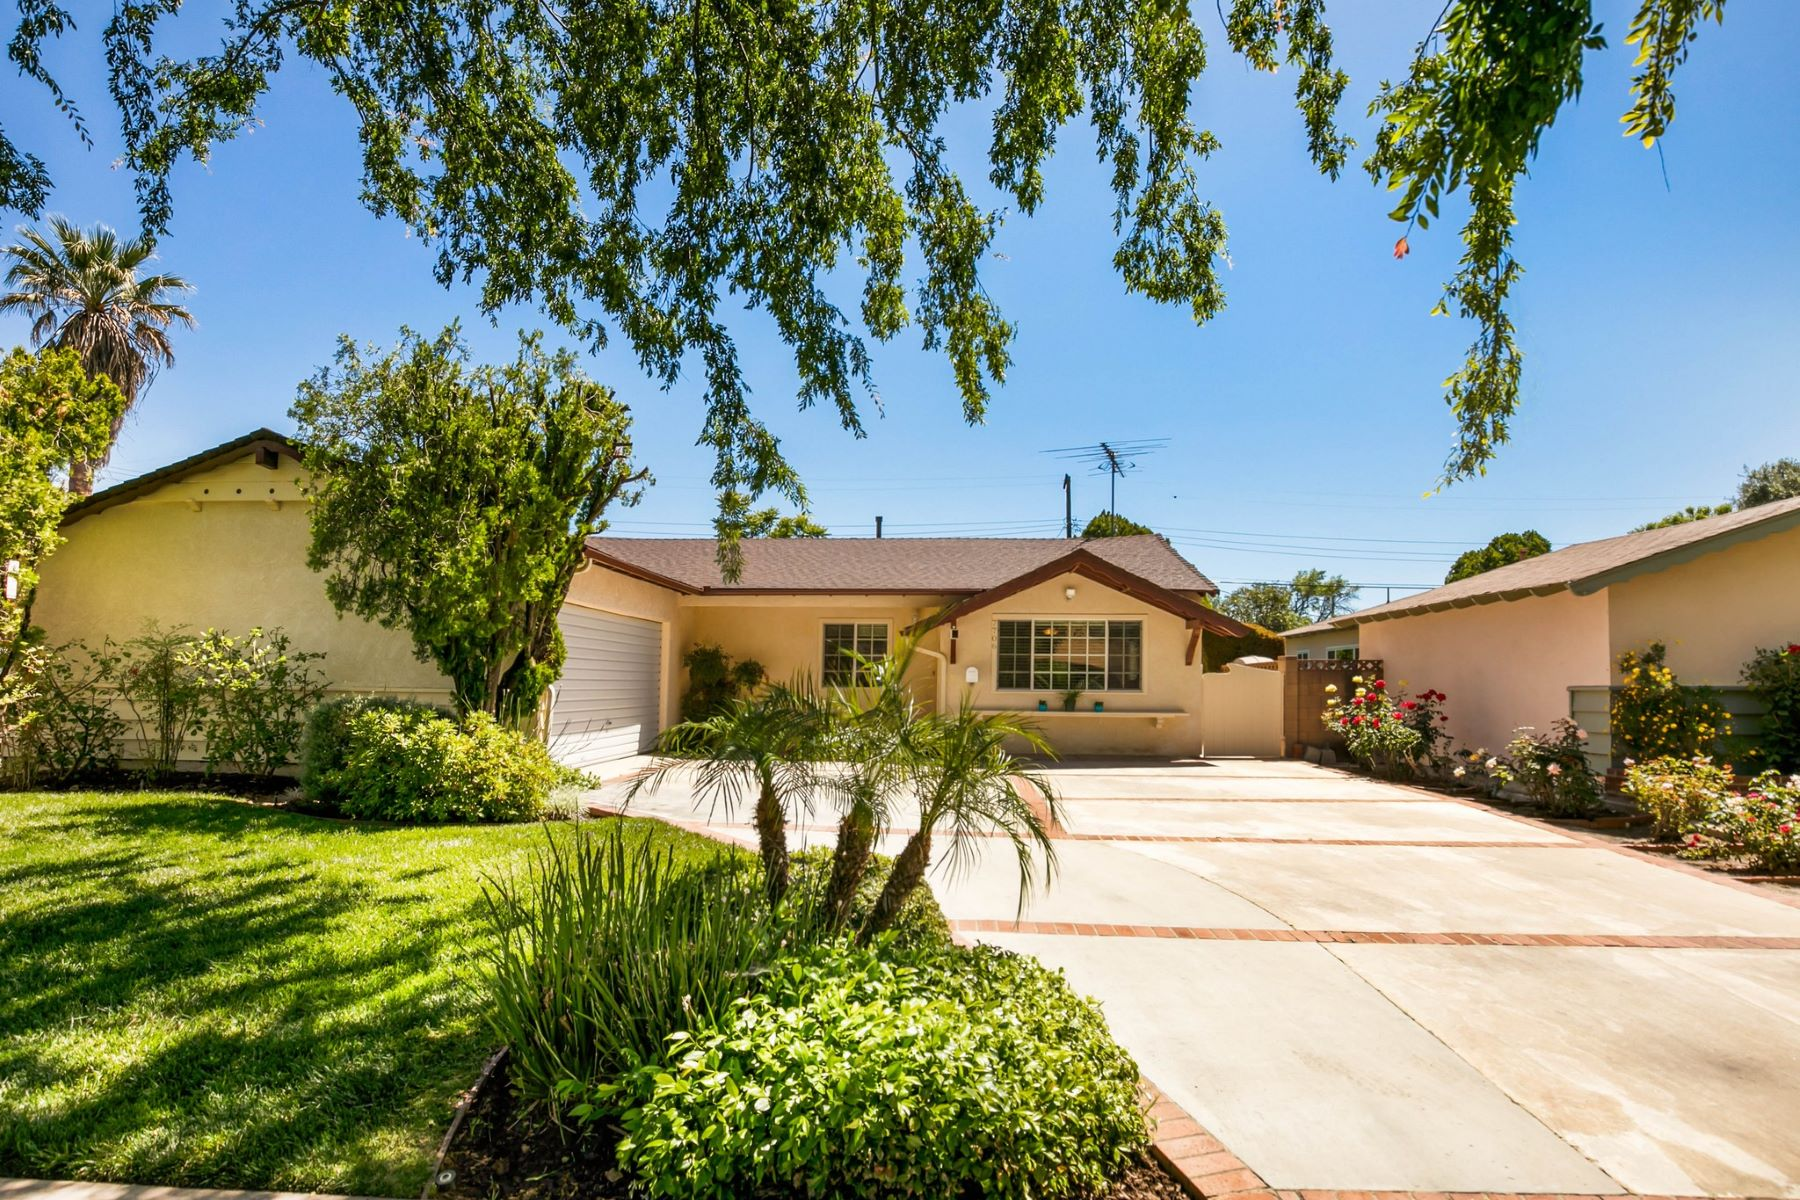 Single Family Homes for Active at 7706 Royer Avenue West Hills, California 91304 United States